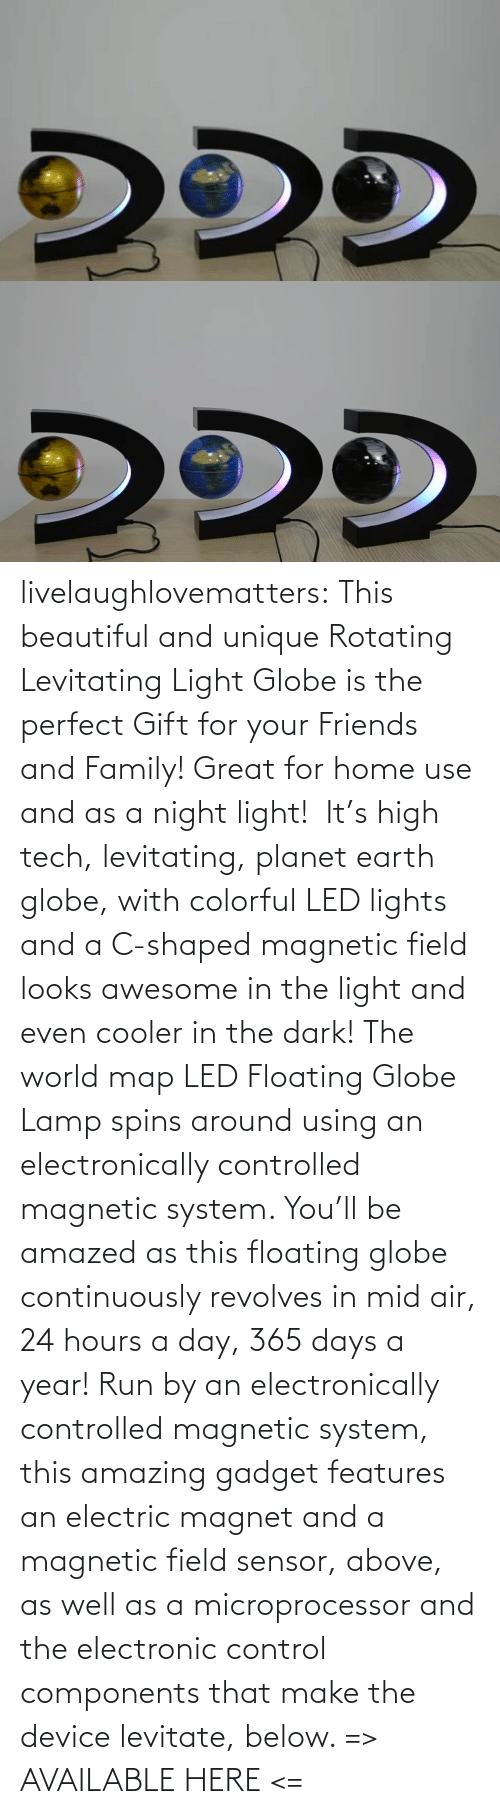 Control: livelaughlovematters: This beautiful and unique Rotating Levitating Light Globe is the perfect Gift for your Friends and Family! Great for home use and as a night light!  It's high tech, levitating, planet earth globe, with colorful LED lights and a C-shaped magnetic field looks awesome in the light and even cooler in the dark! The world map LED Floating Globe Lamp spins around using an electronically controlled magnetic system.  You'll be amazed as this floating globe continuously revolves in mid air, 24 hours a day, 365 days a year! Run by an electronically controlled magnetic system, this amazing gadget features an electric magnet and a magnetic field sensor, above, as well as a microprocessor and the electronic control components that make the device levitate, below.  => AVAILABLE HERE <=